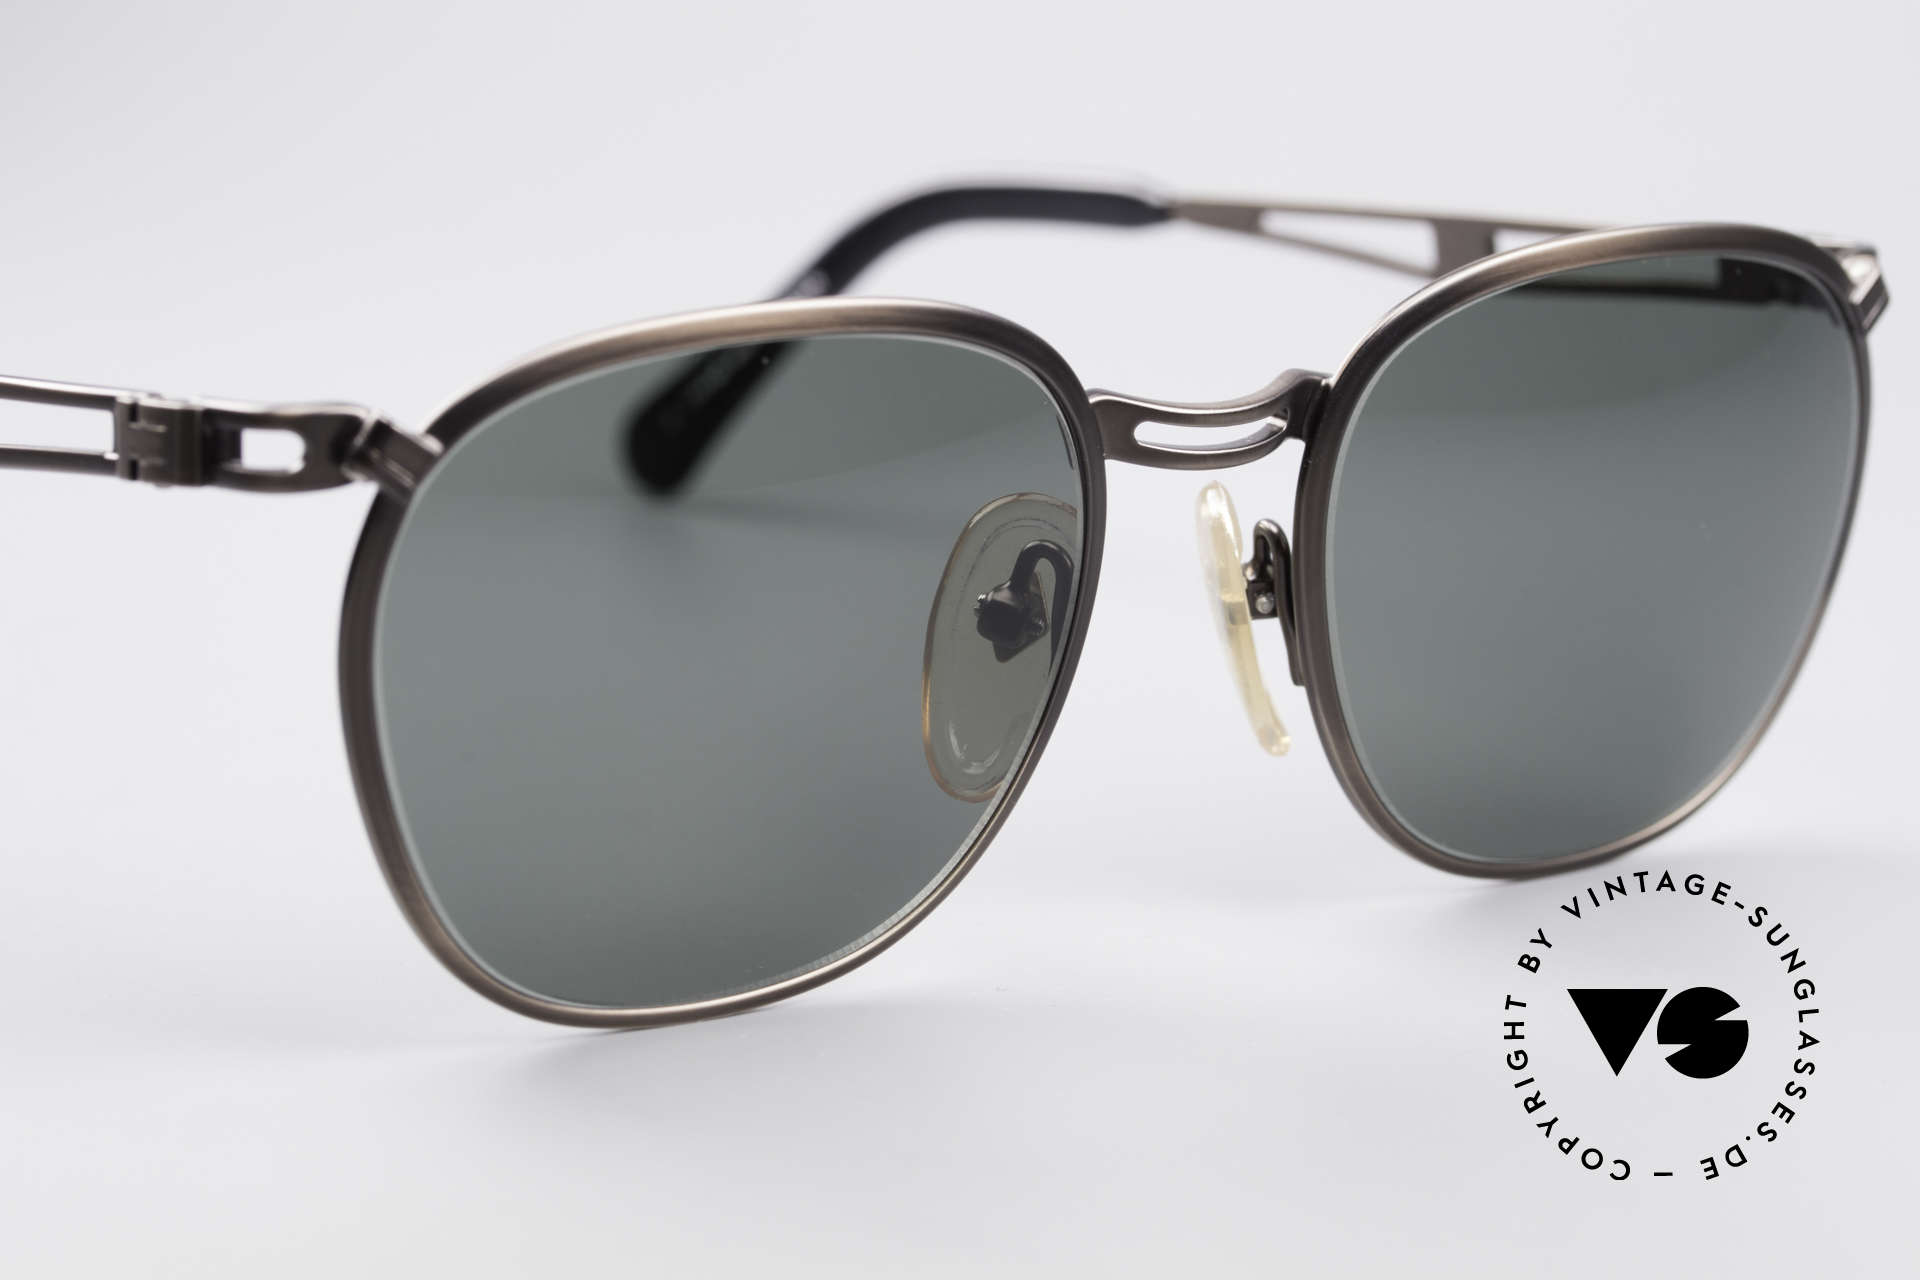 Jean Paul Gaultier 56-2177 Rare Designer Sunglasses, never worn, NOS (like all our rare vintage shades), Made for Men and Women